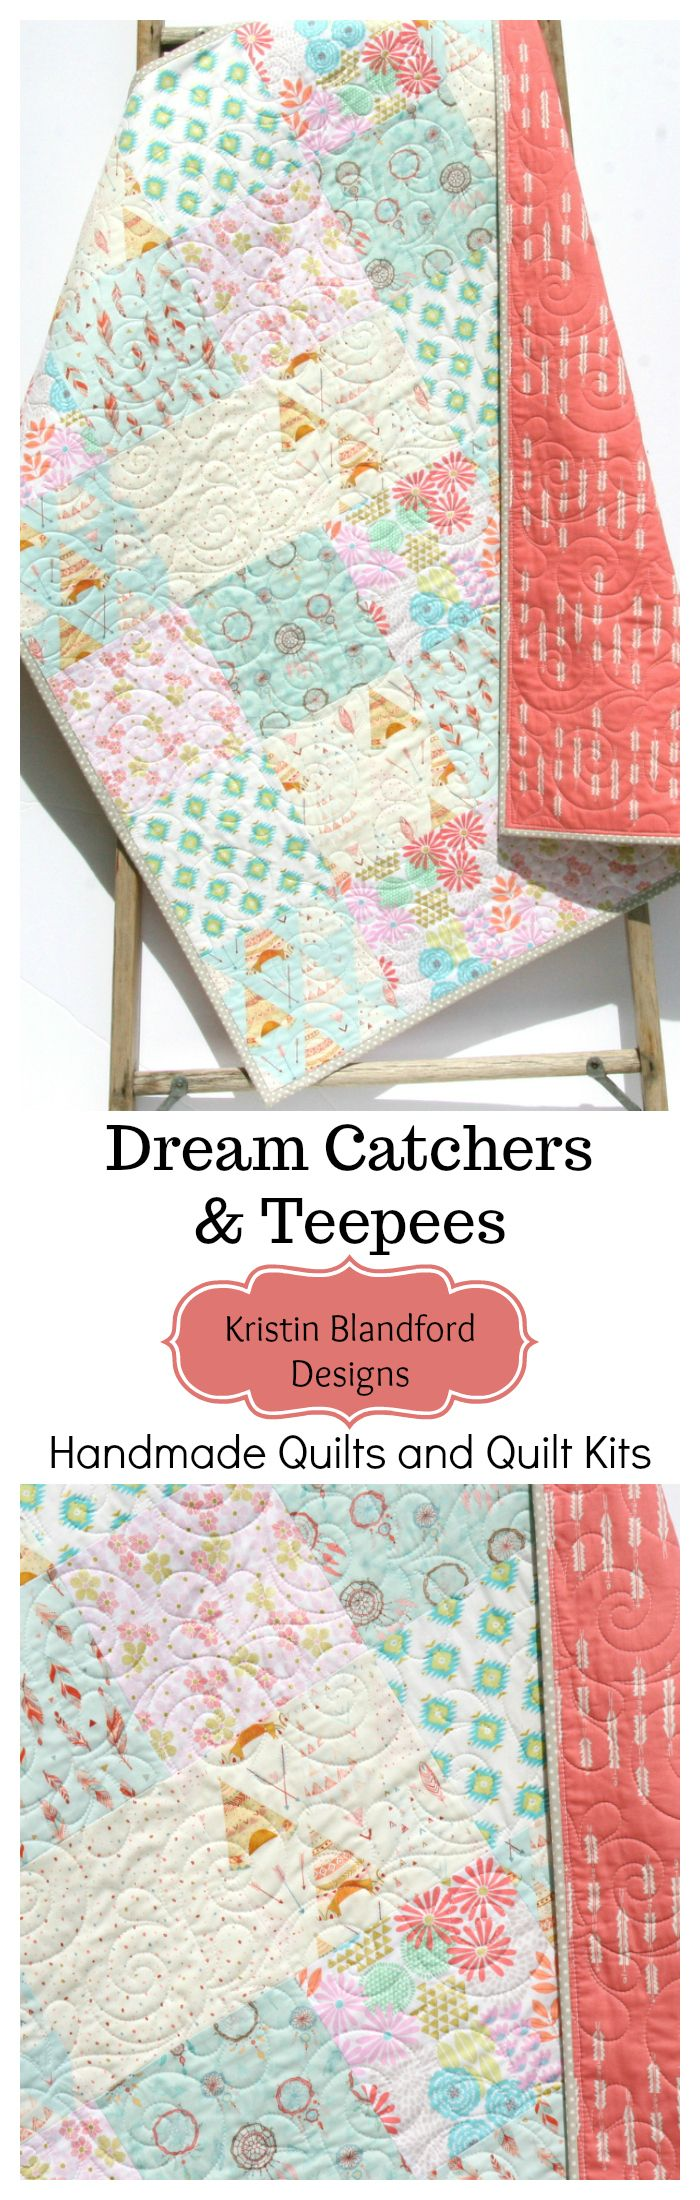 Dream Catchers Handmade Quilt, Girl Teepee Bedding, Baby Quilt for Sale, Toddler Bed Quilt for Sale, Baby Quilt Kit, Throw Quilt Kit, Twin Quilt Kit, Simple Patchwork Pattern, DIY Sewing Project for Beginners, Coral Mint Blue Girl Nursery, Aztec Theme, Popular Baby Girl Nursery Bedding by Kristin Blandford Designs #AztecBedding #BohoNursery #babybedding #CribBlanket